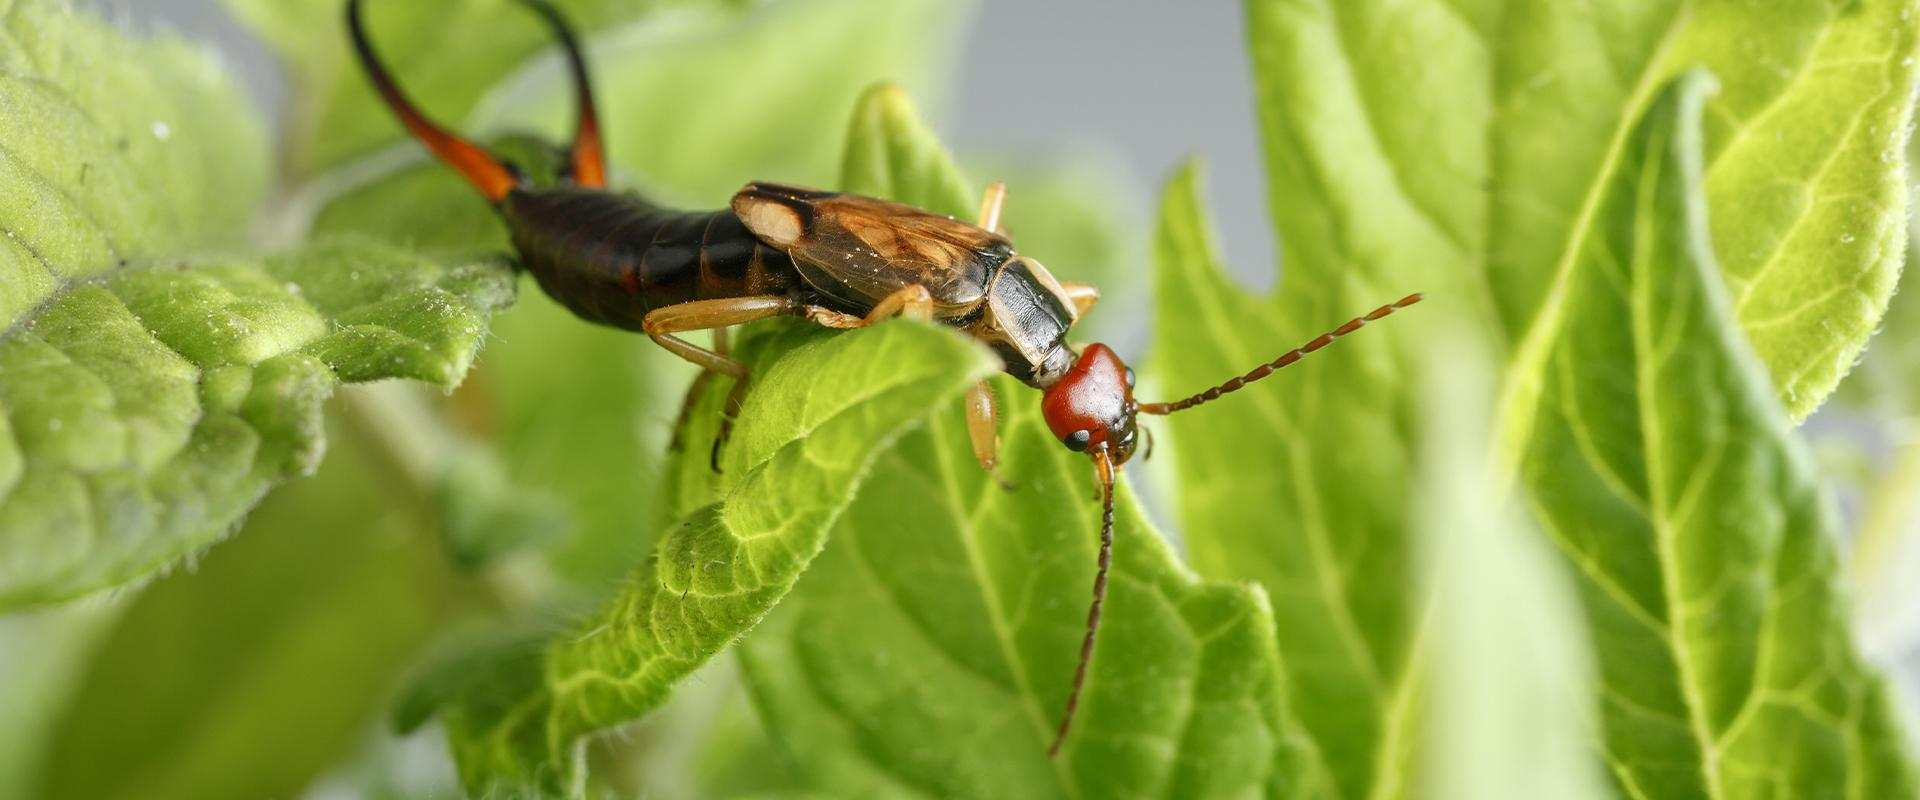 a earwig in the leaves